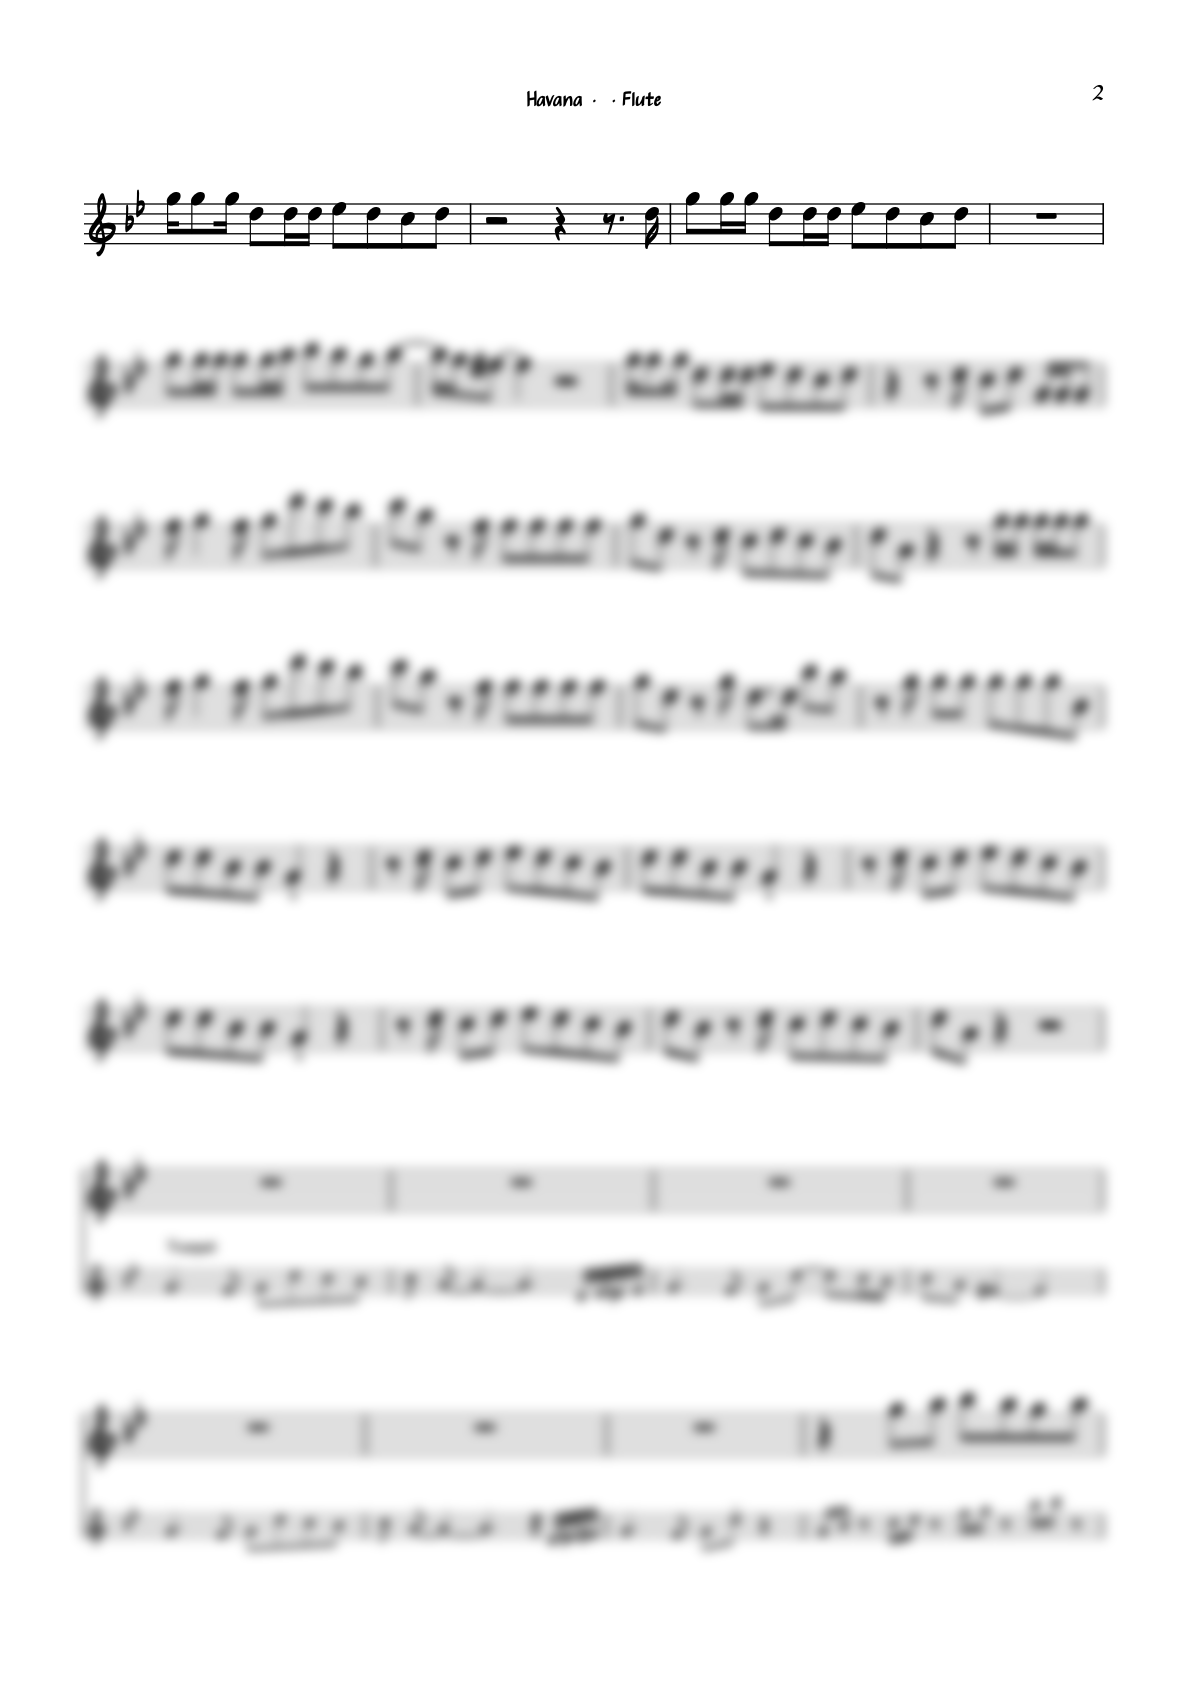 """""""Havana"""" by Camila Cabello for flute including play-along (backing track)"""